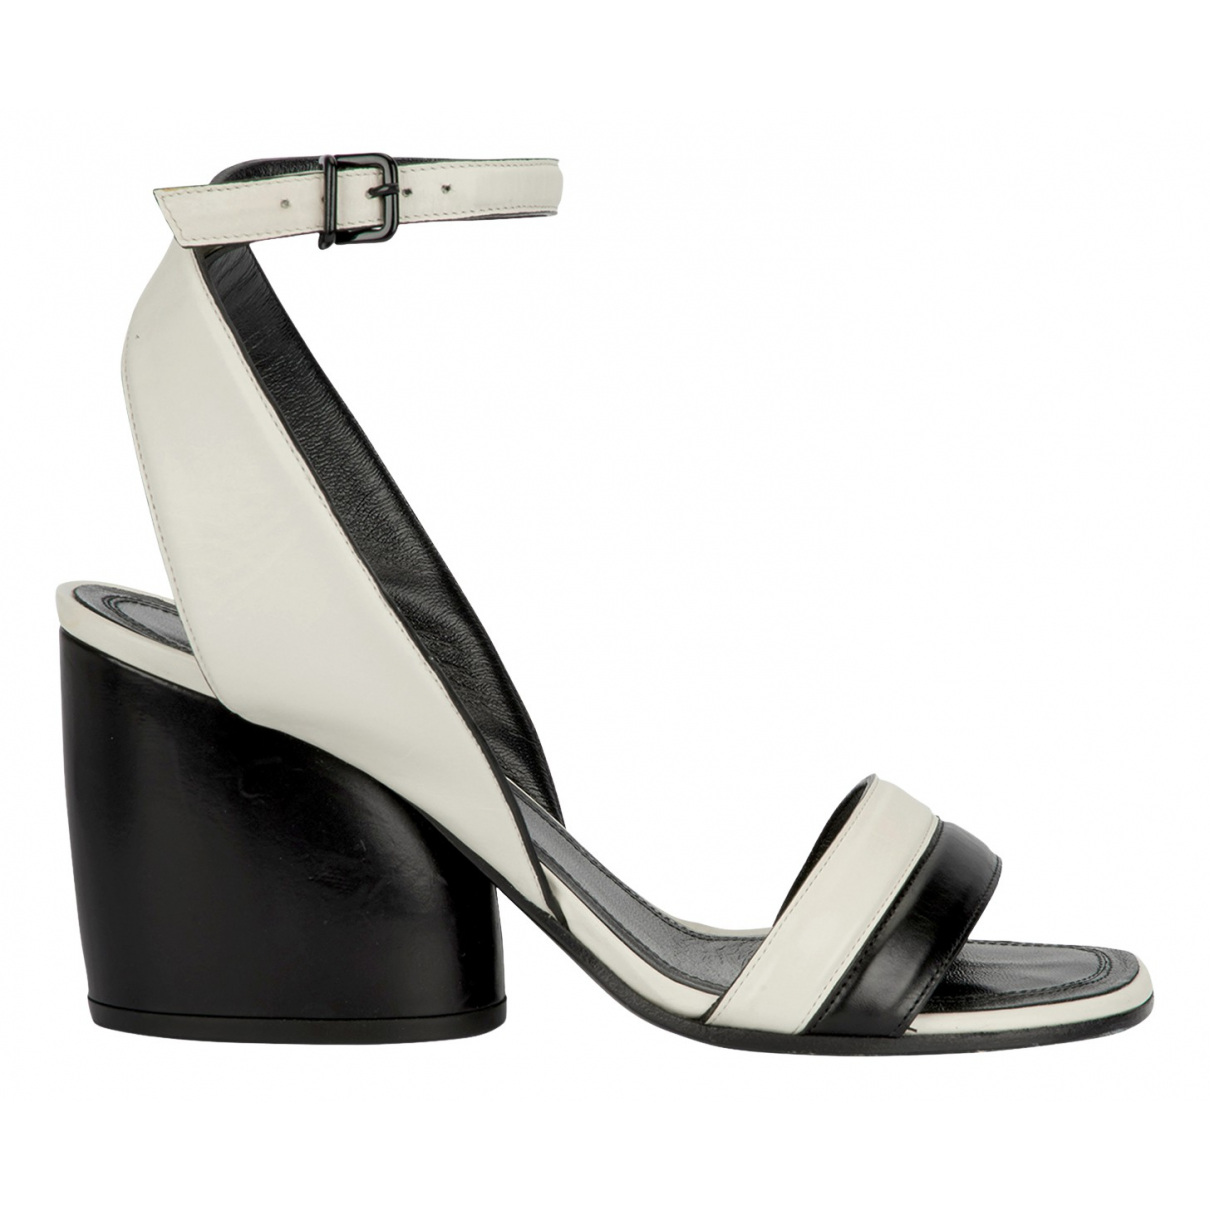 Celine N White Leather Sandals for Women 4 UK